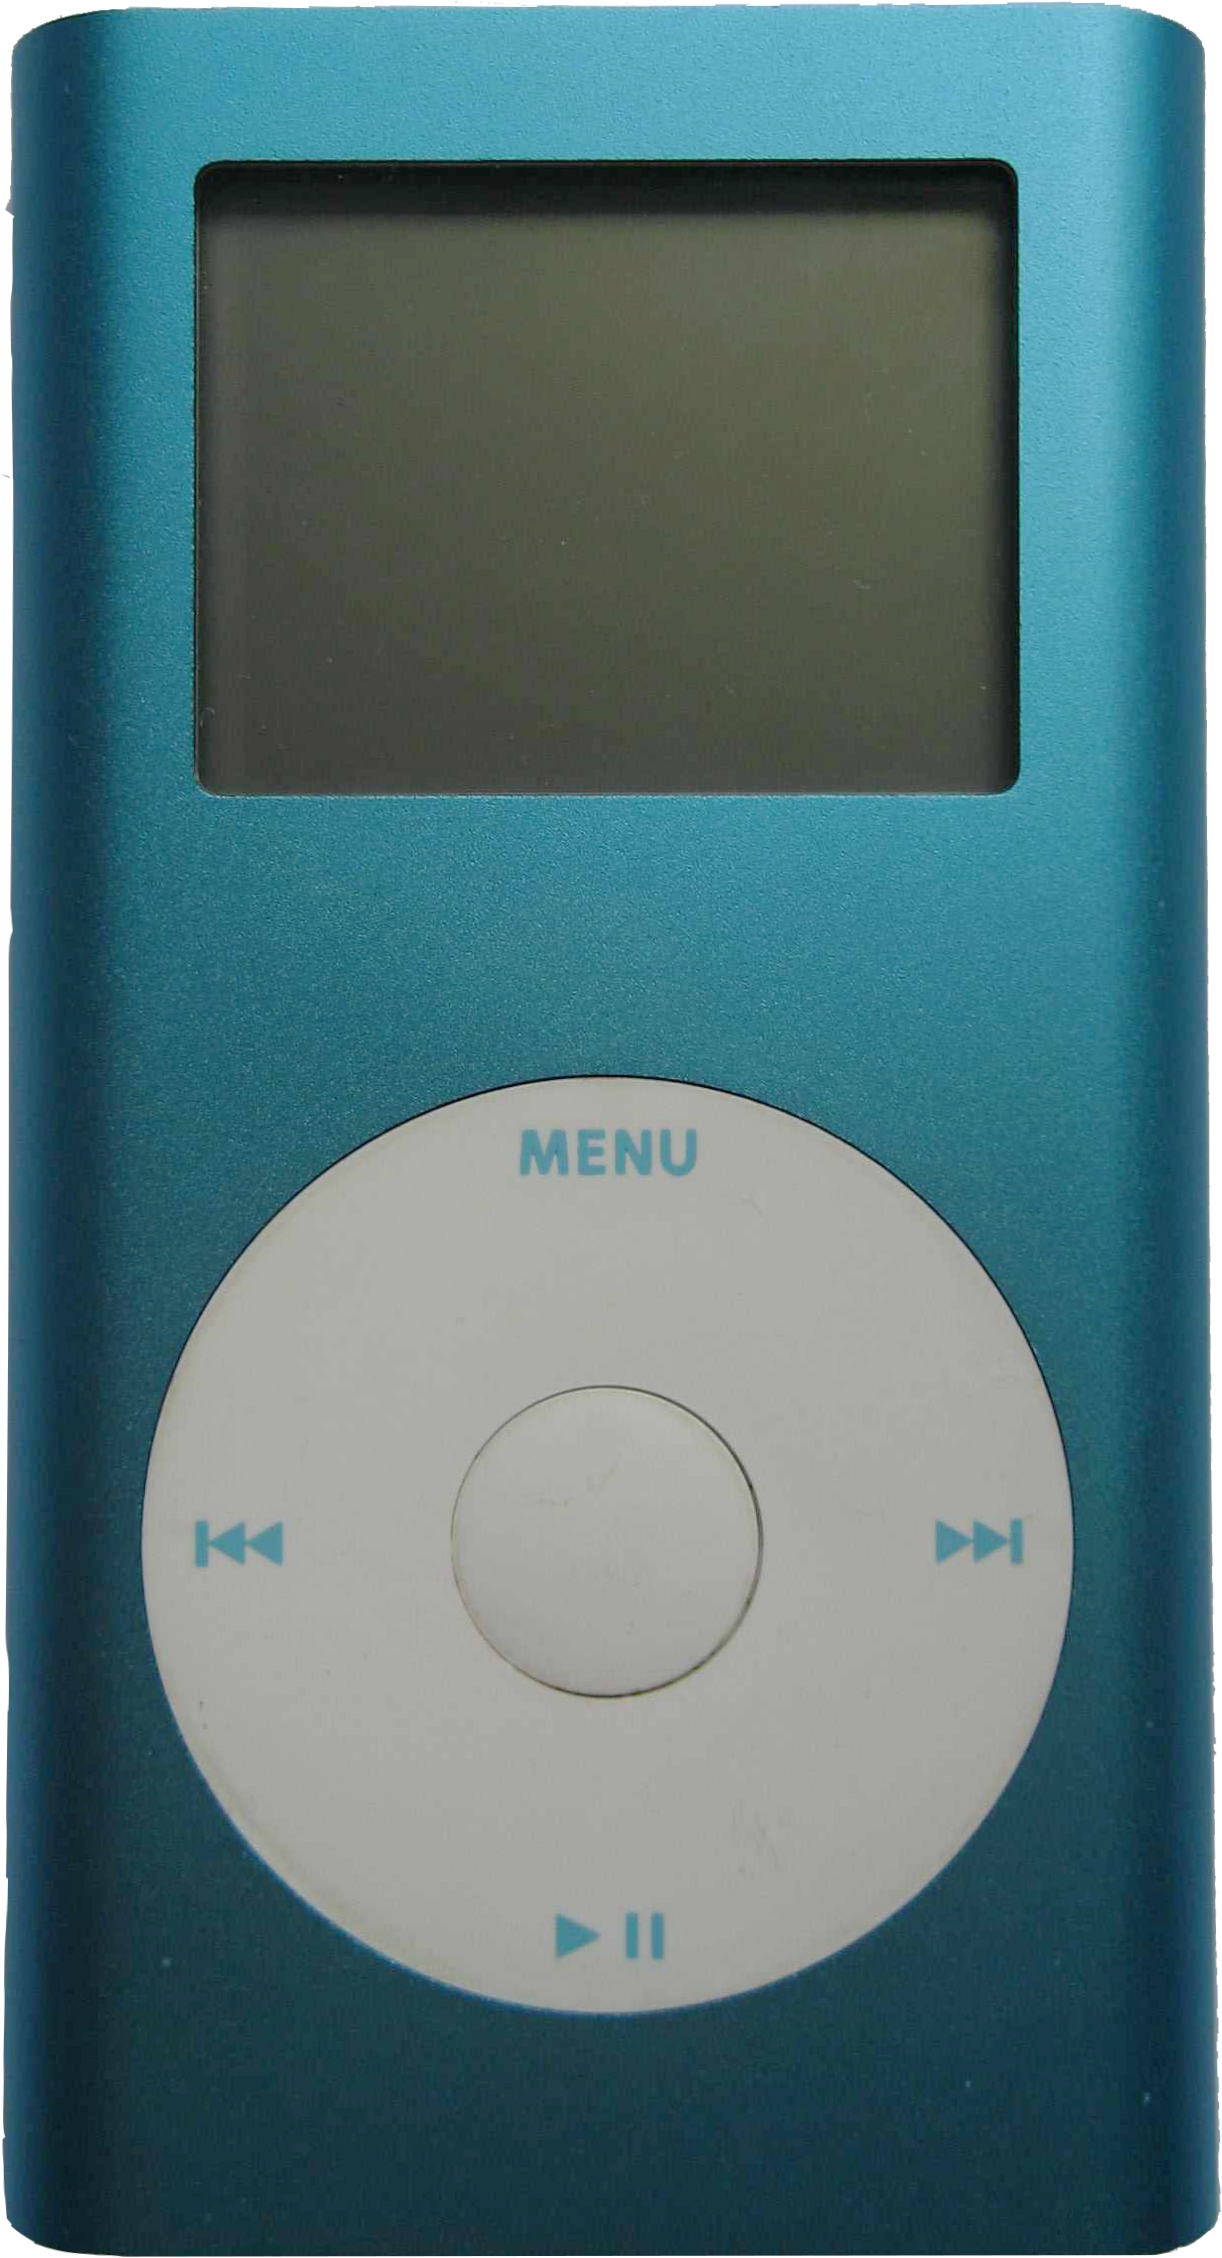 how to put mp3 files on an ipod